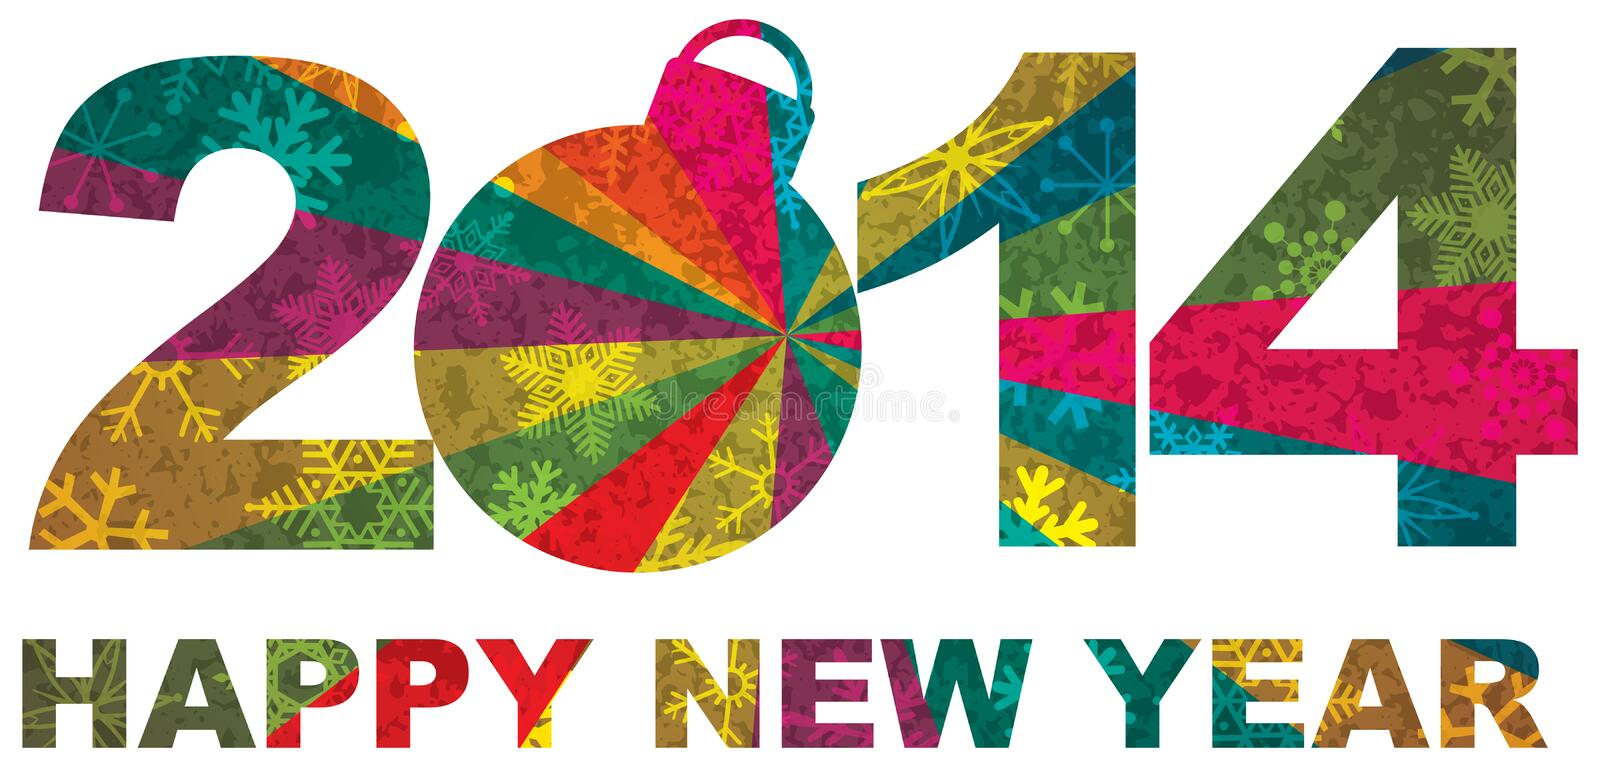 2014 Happy New Year Numerals